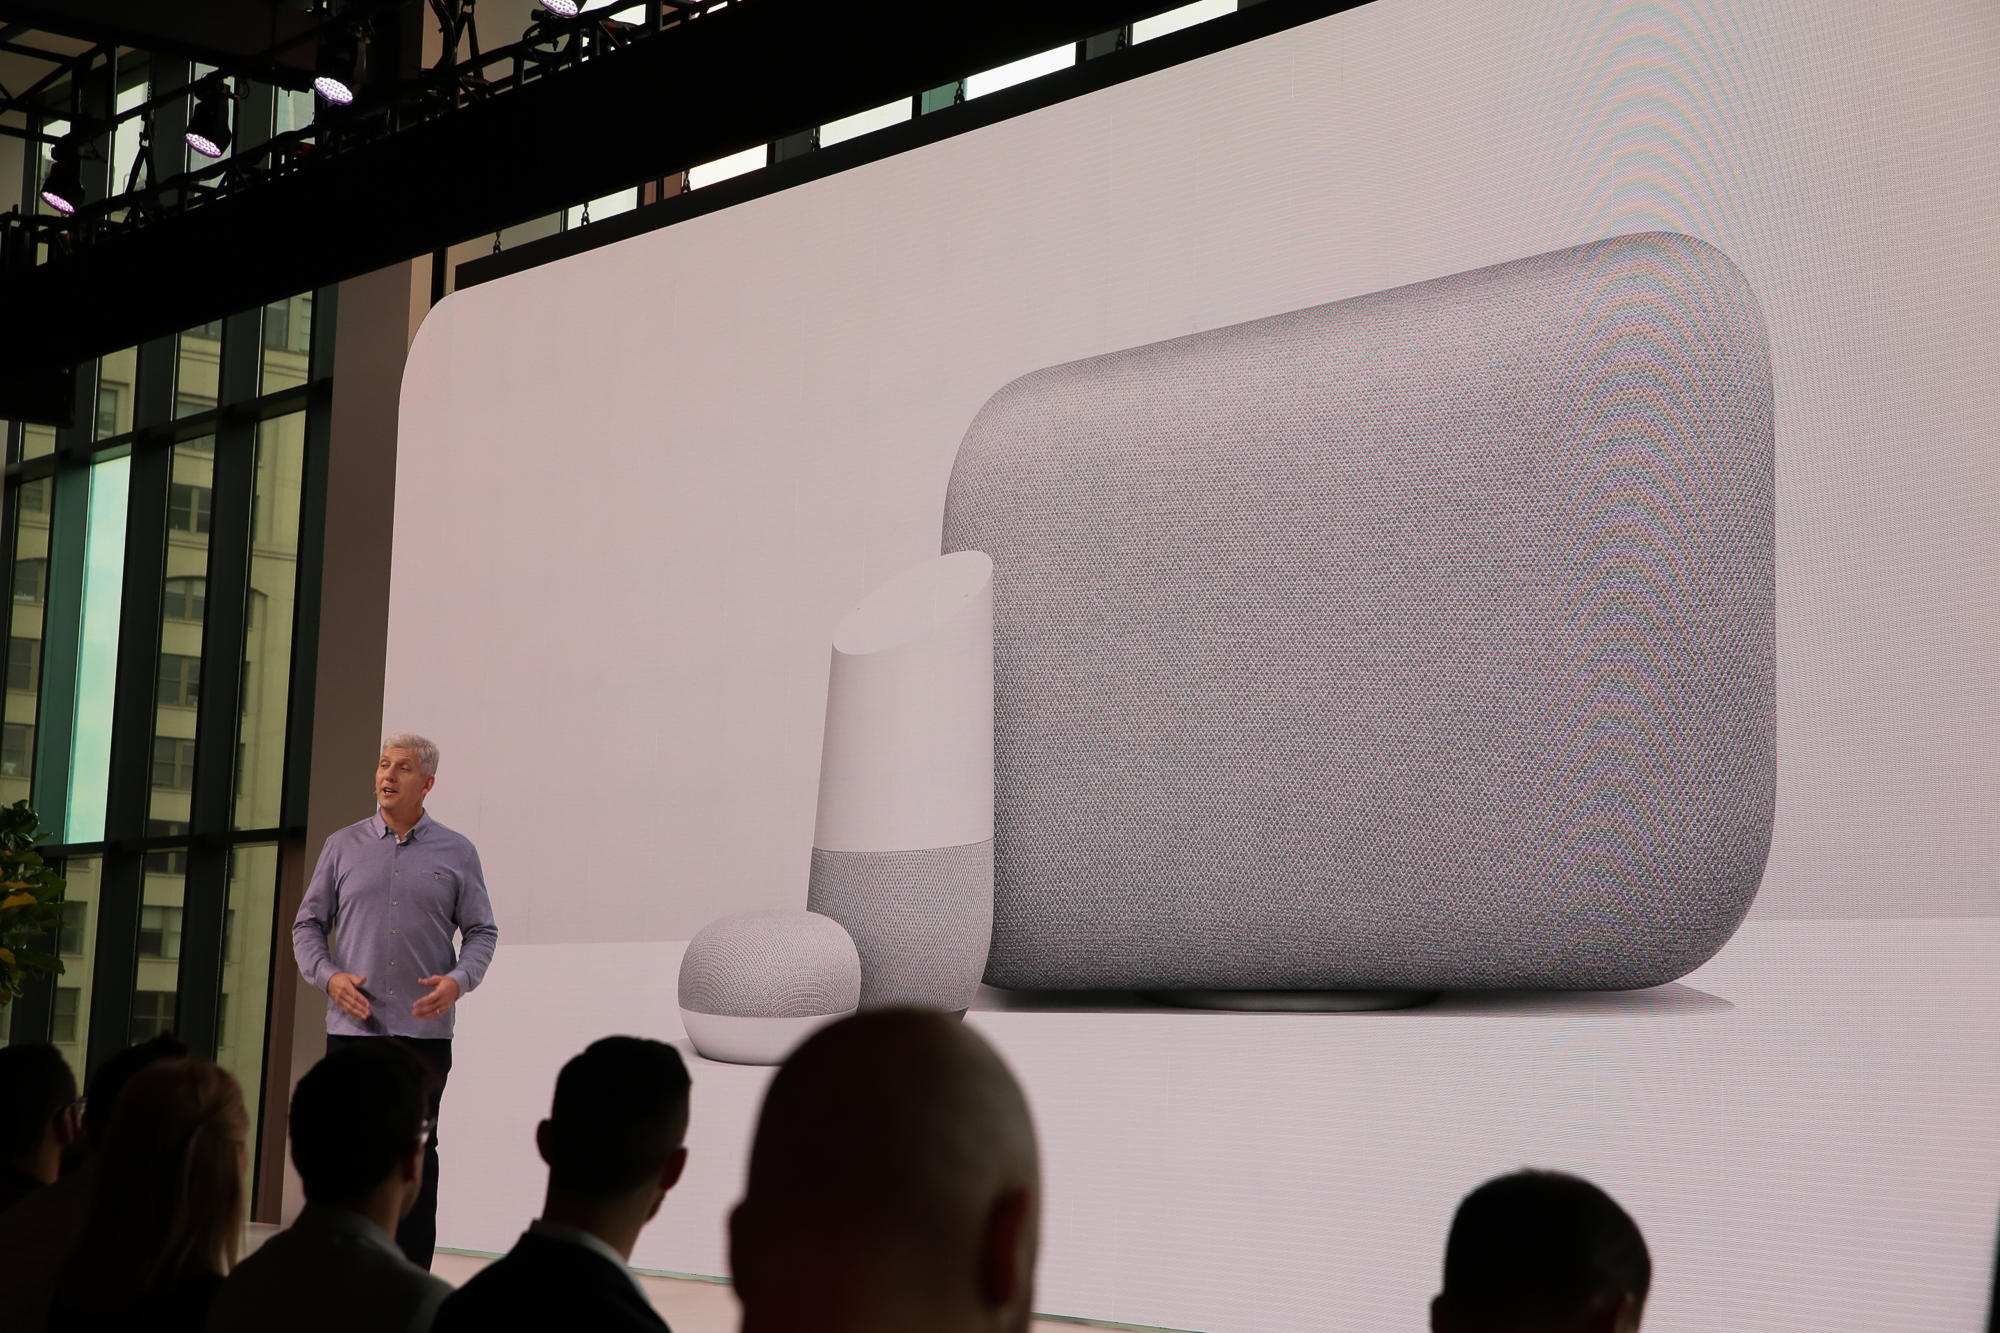 Google Hardware Chief Rick Osterloh announced new devices on Tuesday.